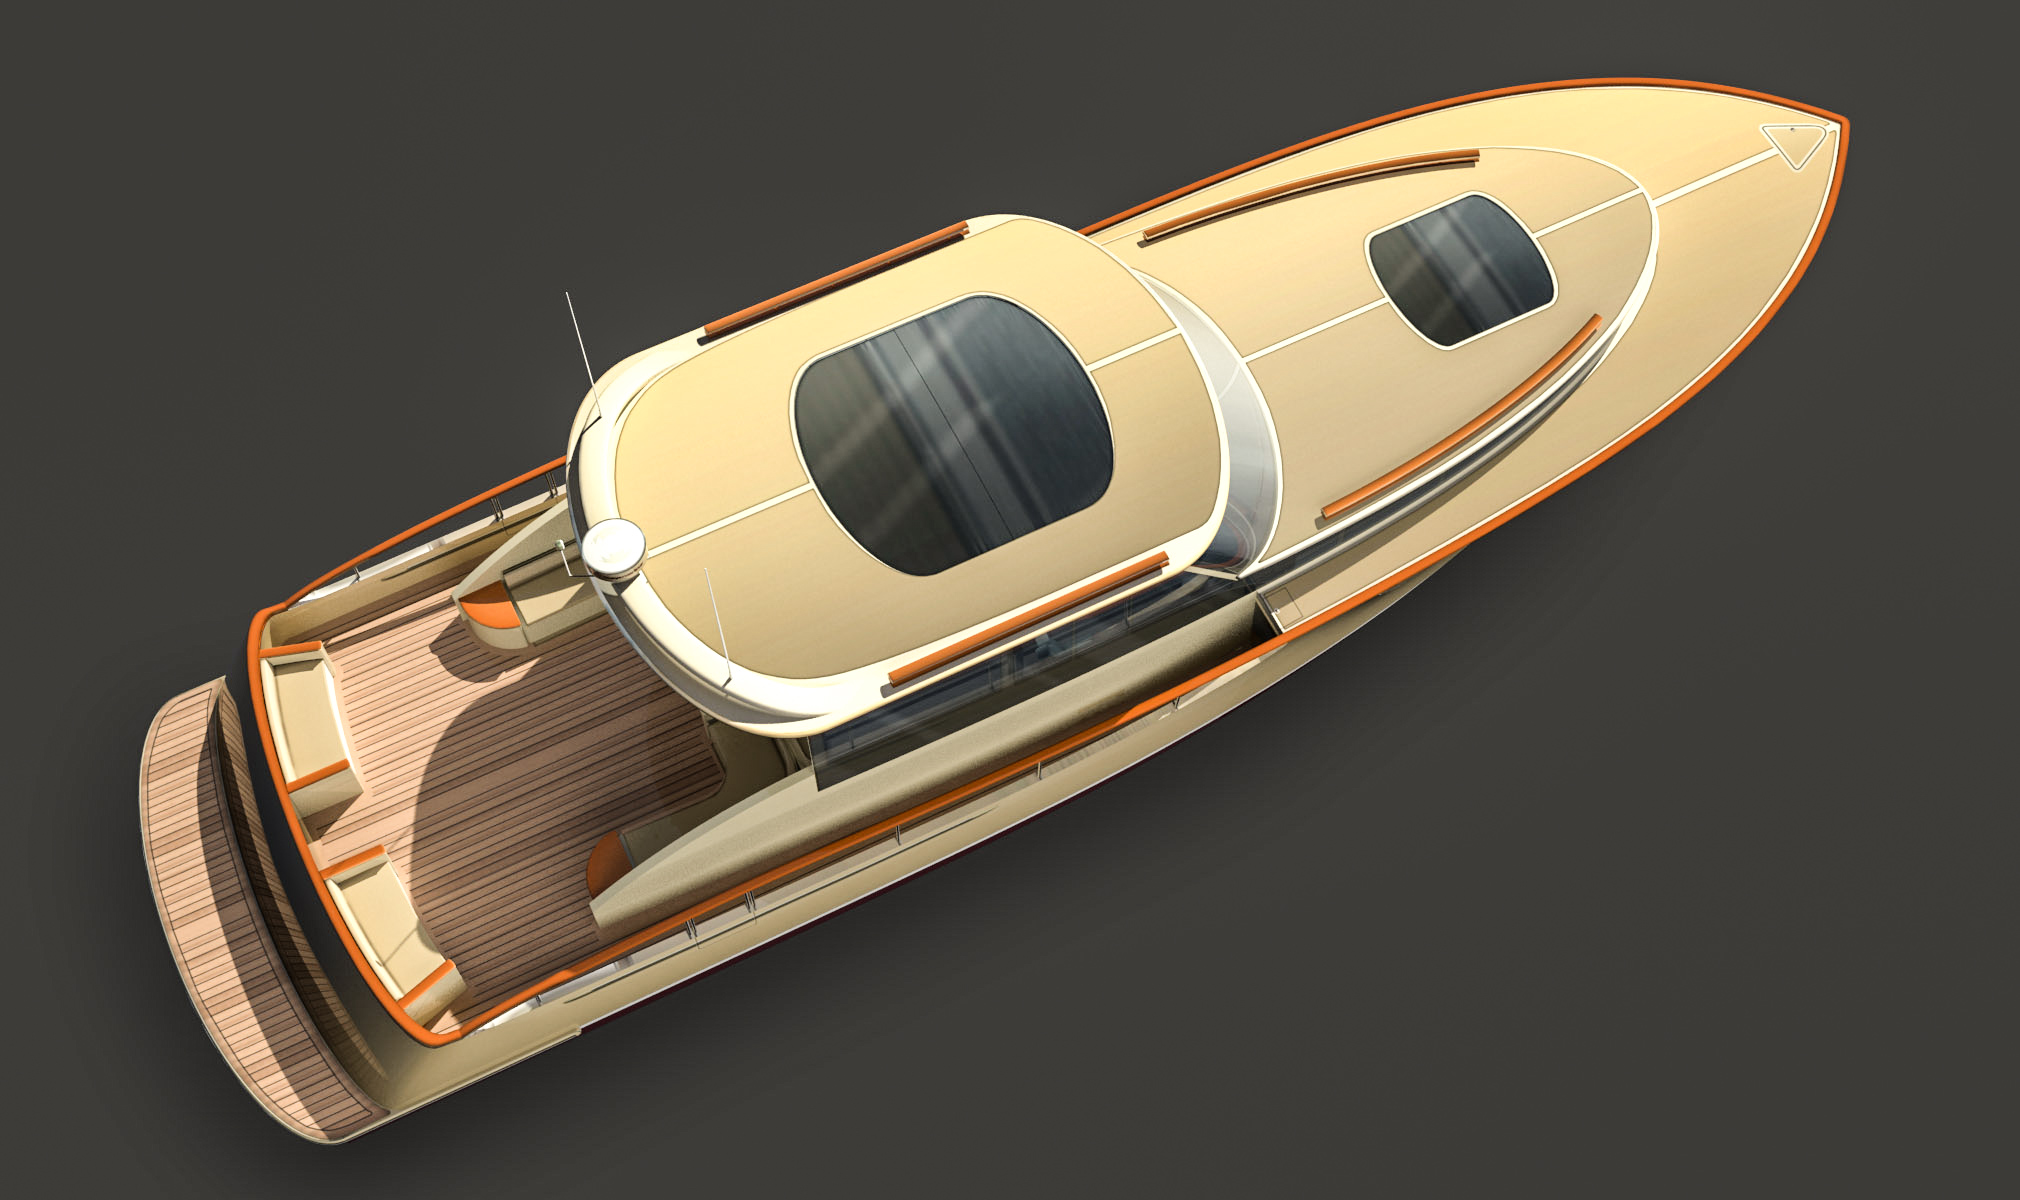 DAF Renderings 60ft Motor Yacht